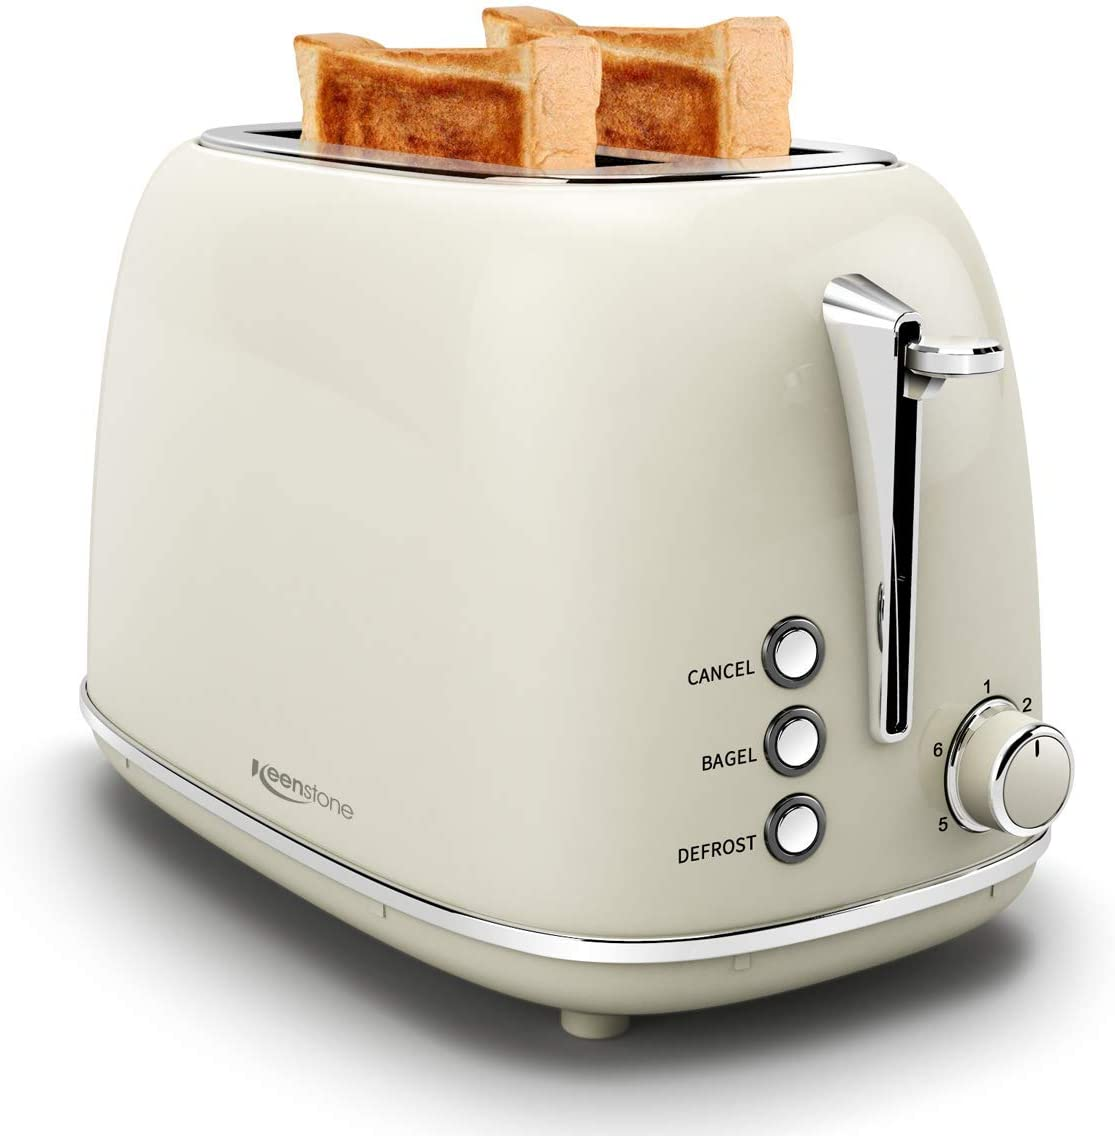 Toasters 2 Slice Retro Stainless Steel Toasters with Bagel, Cancel, Defrost Function and 6 Bread Shade Settings Bagel Toaster, Cream (Renewed)